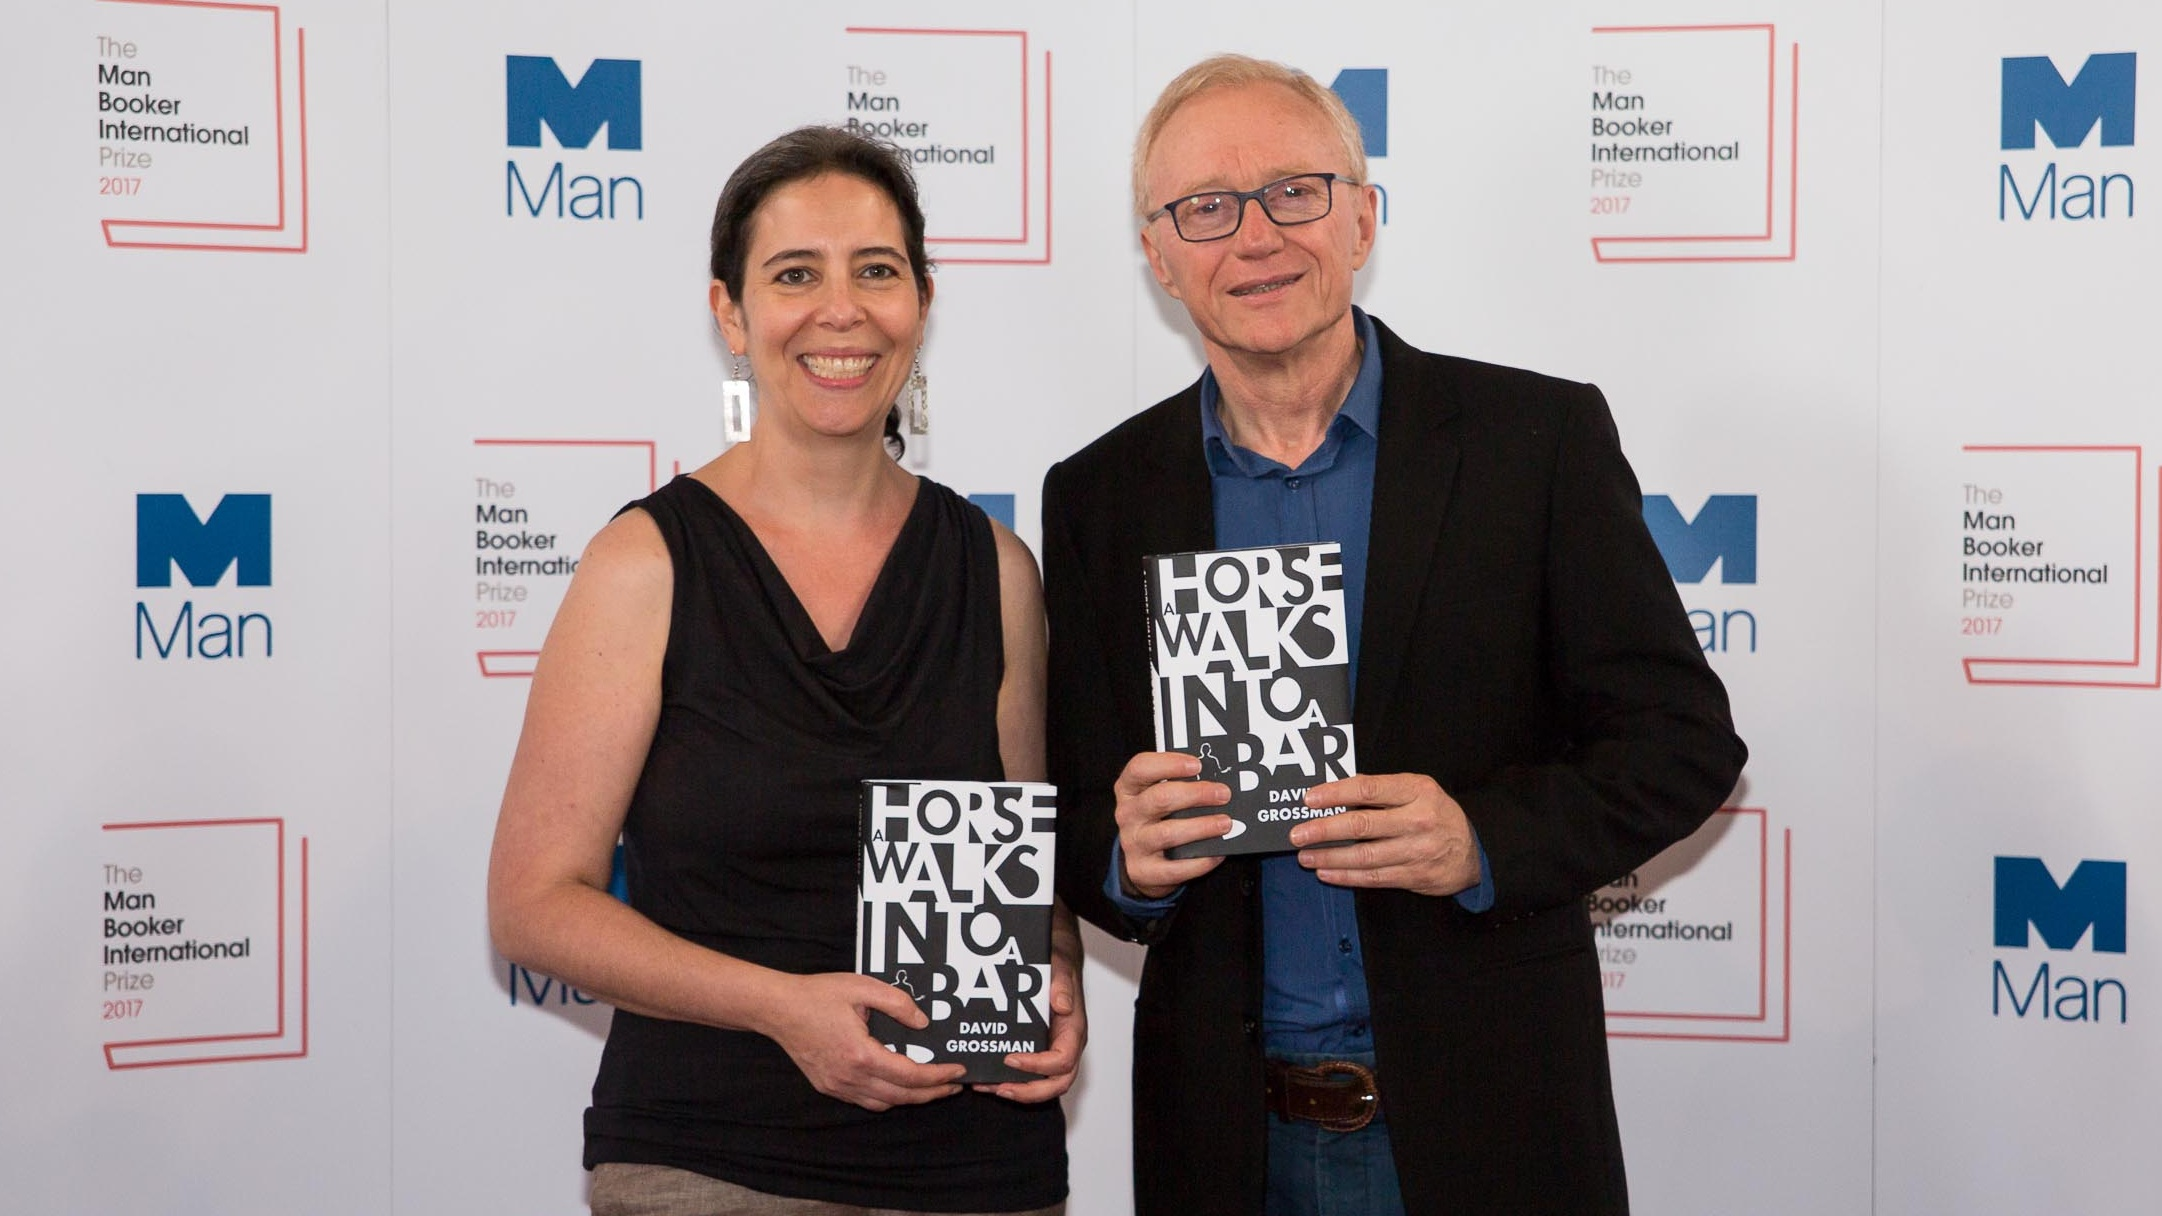 Israel's David Grossman wins International Booker Prize - Western Mass News - WGGB/WSHM